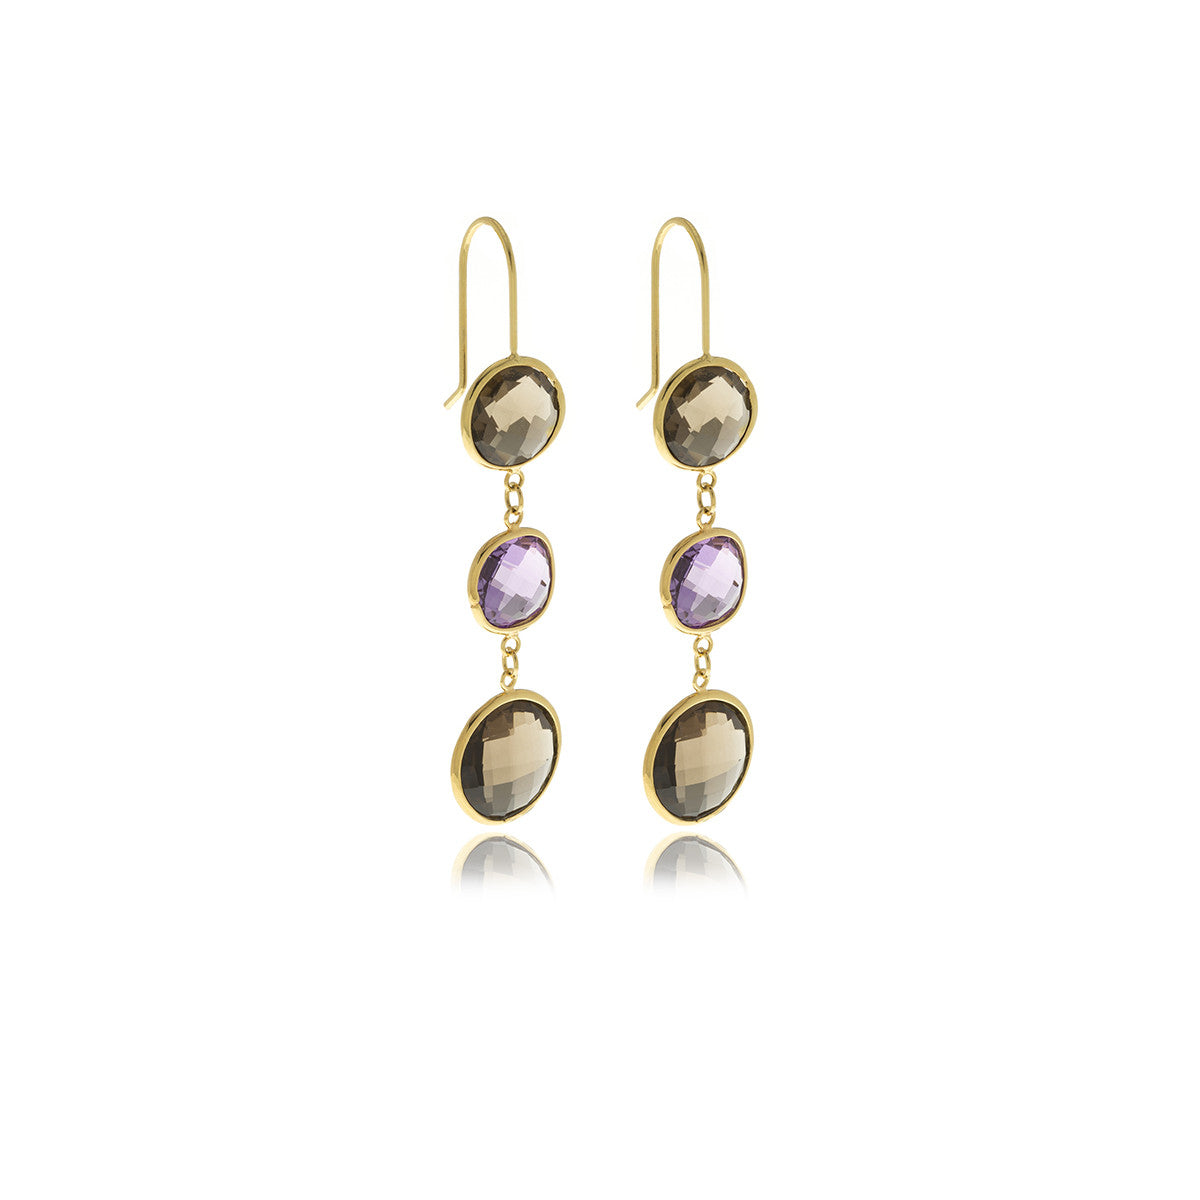 Luxe Gold Long Earrings - Georgina Jewelry